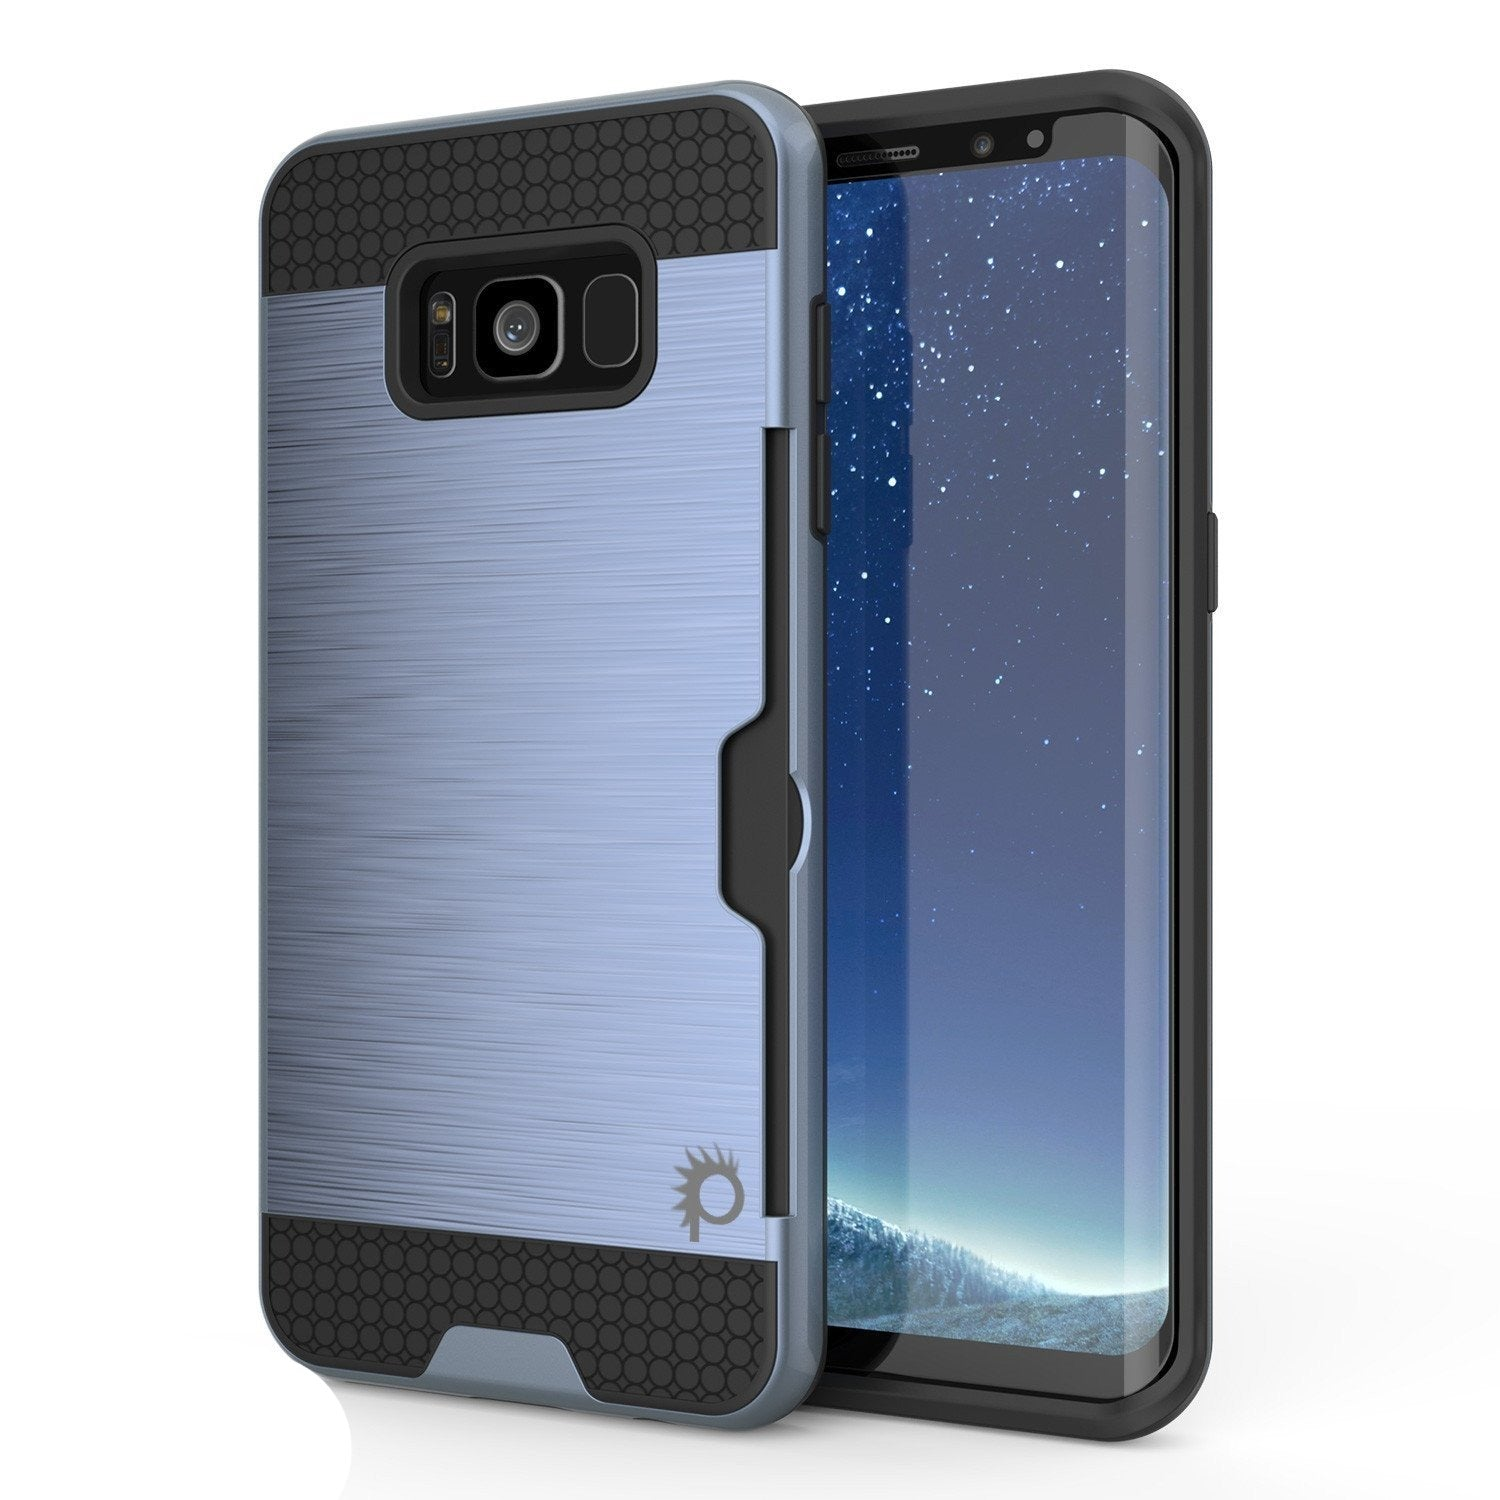 Galaxy S8 Case, PUNKcase [SLOT Series] [Slim Fit] Dual-Layer Armor Cover w/Integrated Anti-Shock System, Credit Card Slot & PUNKSHIELD Screen Protector for Samsung Galaxy S8[Navy]